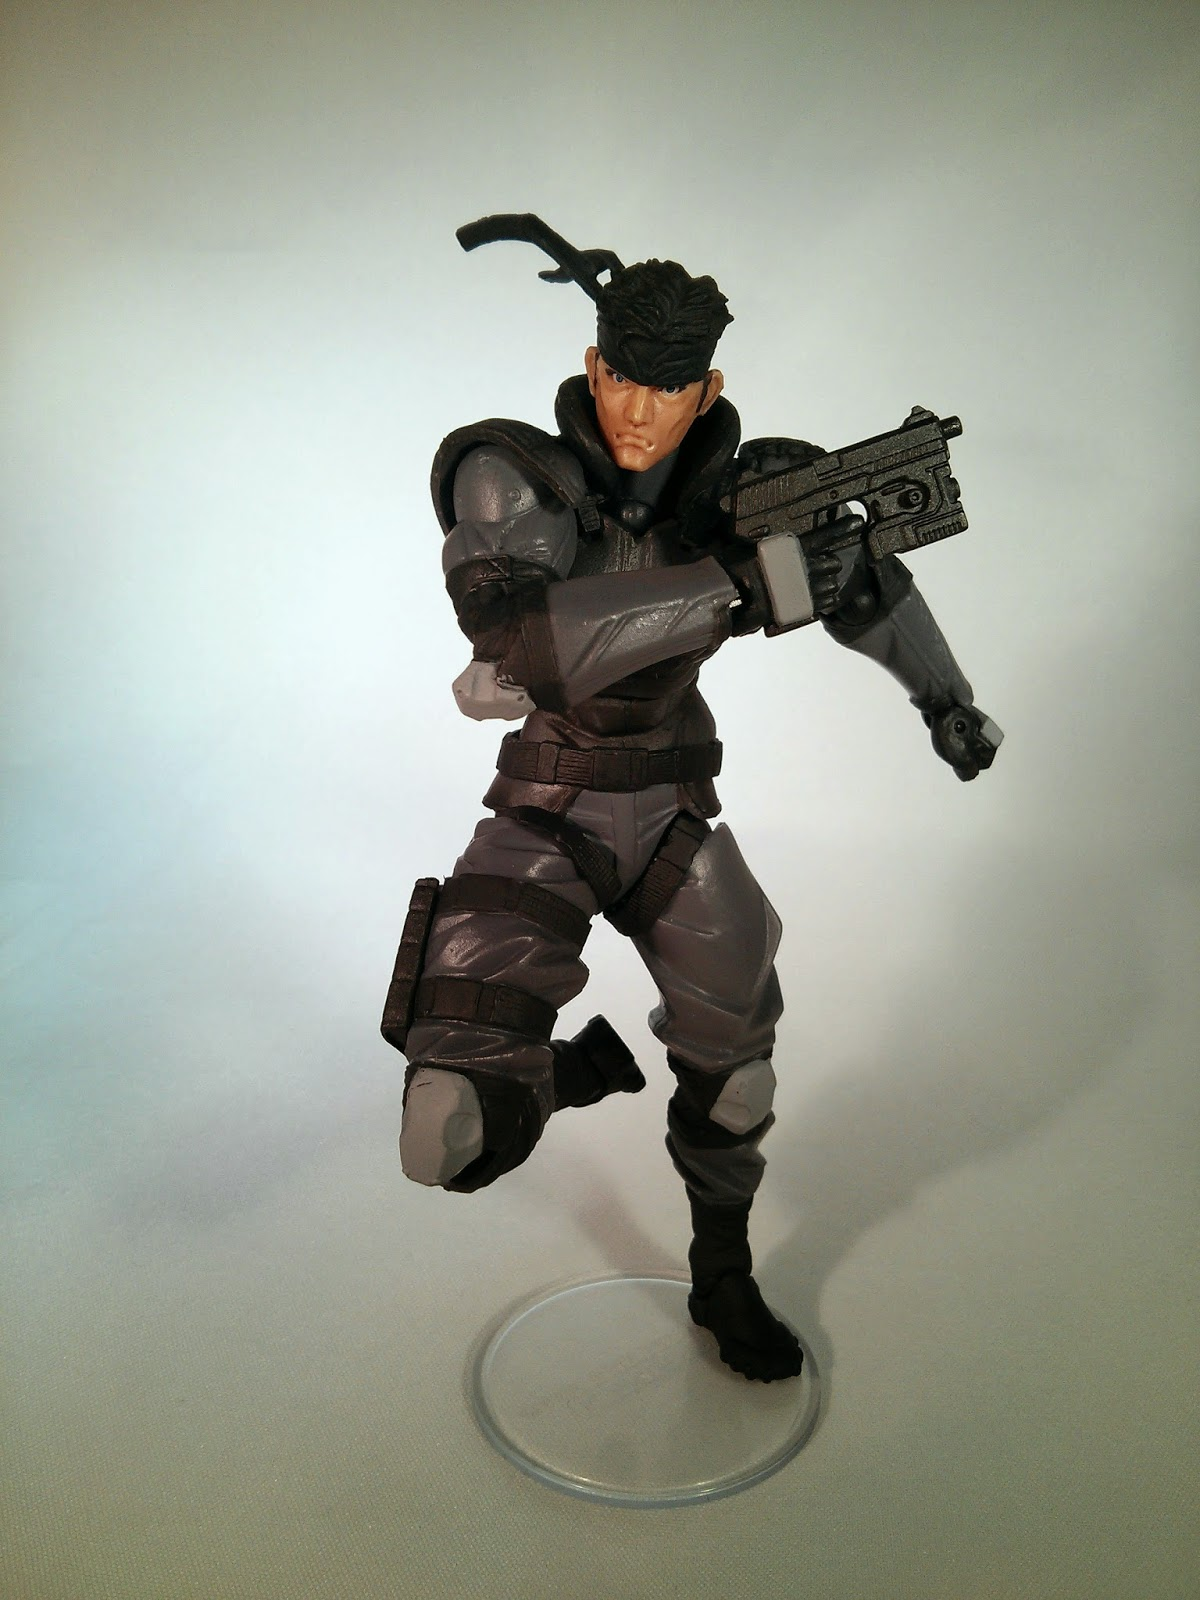 MGS Solid Snake